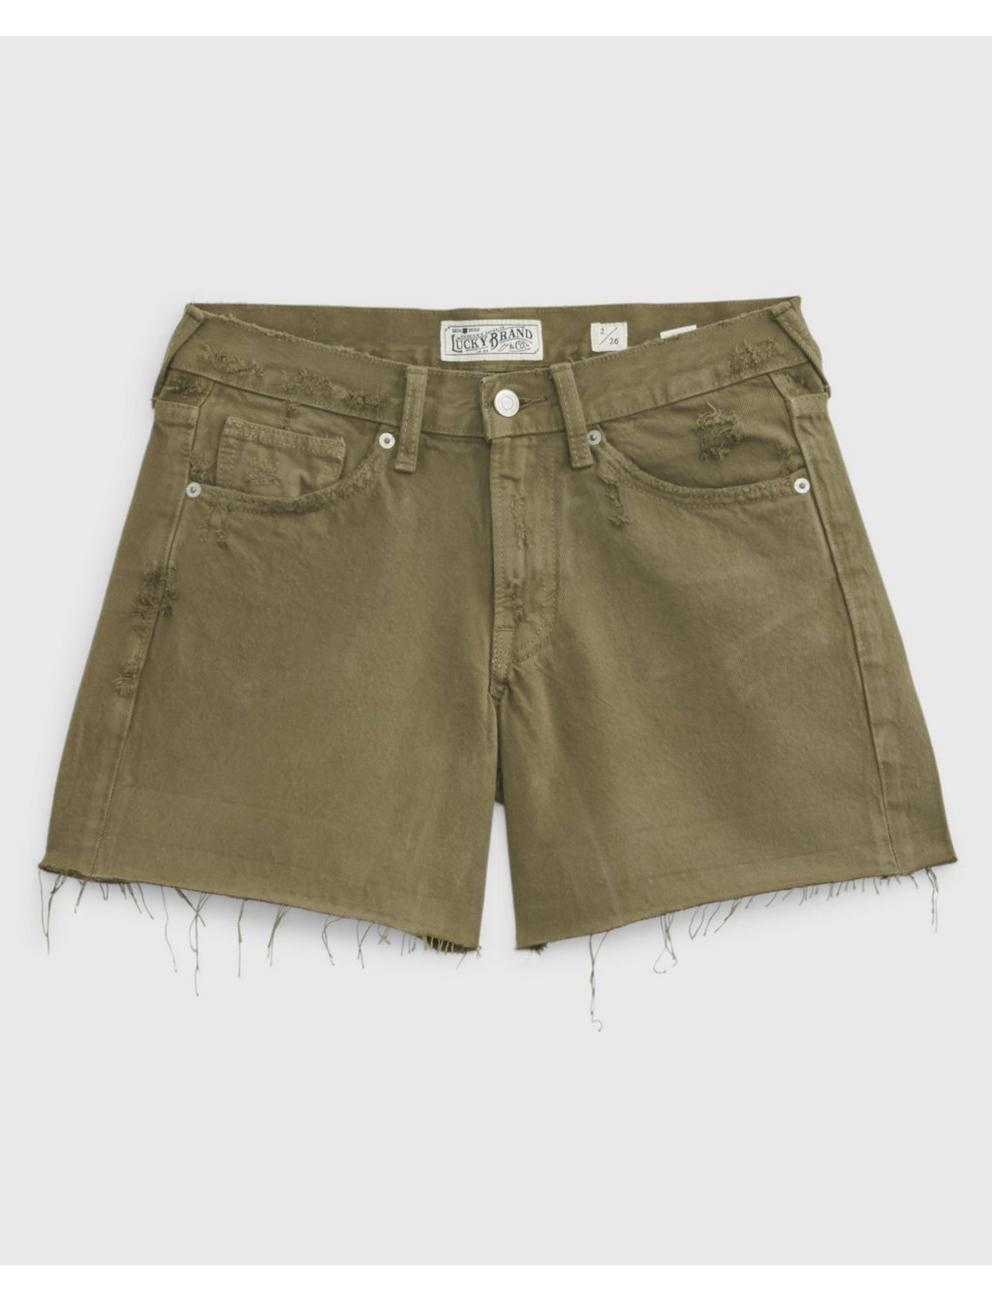 THE BOYFRIEND SHORT, GRAPE LEAF CT